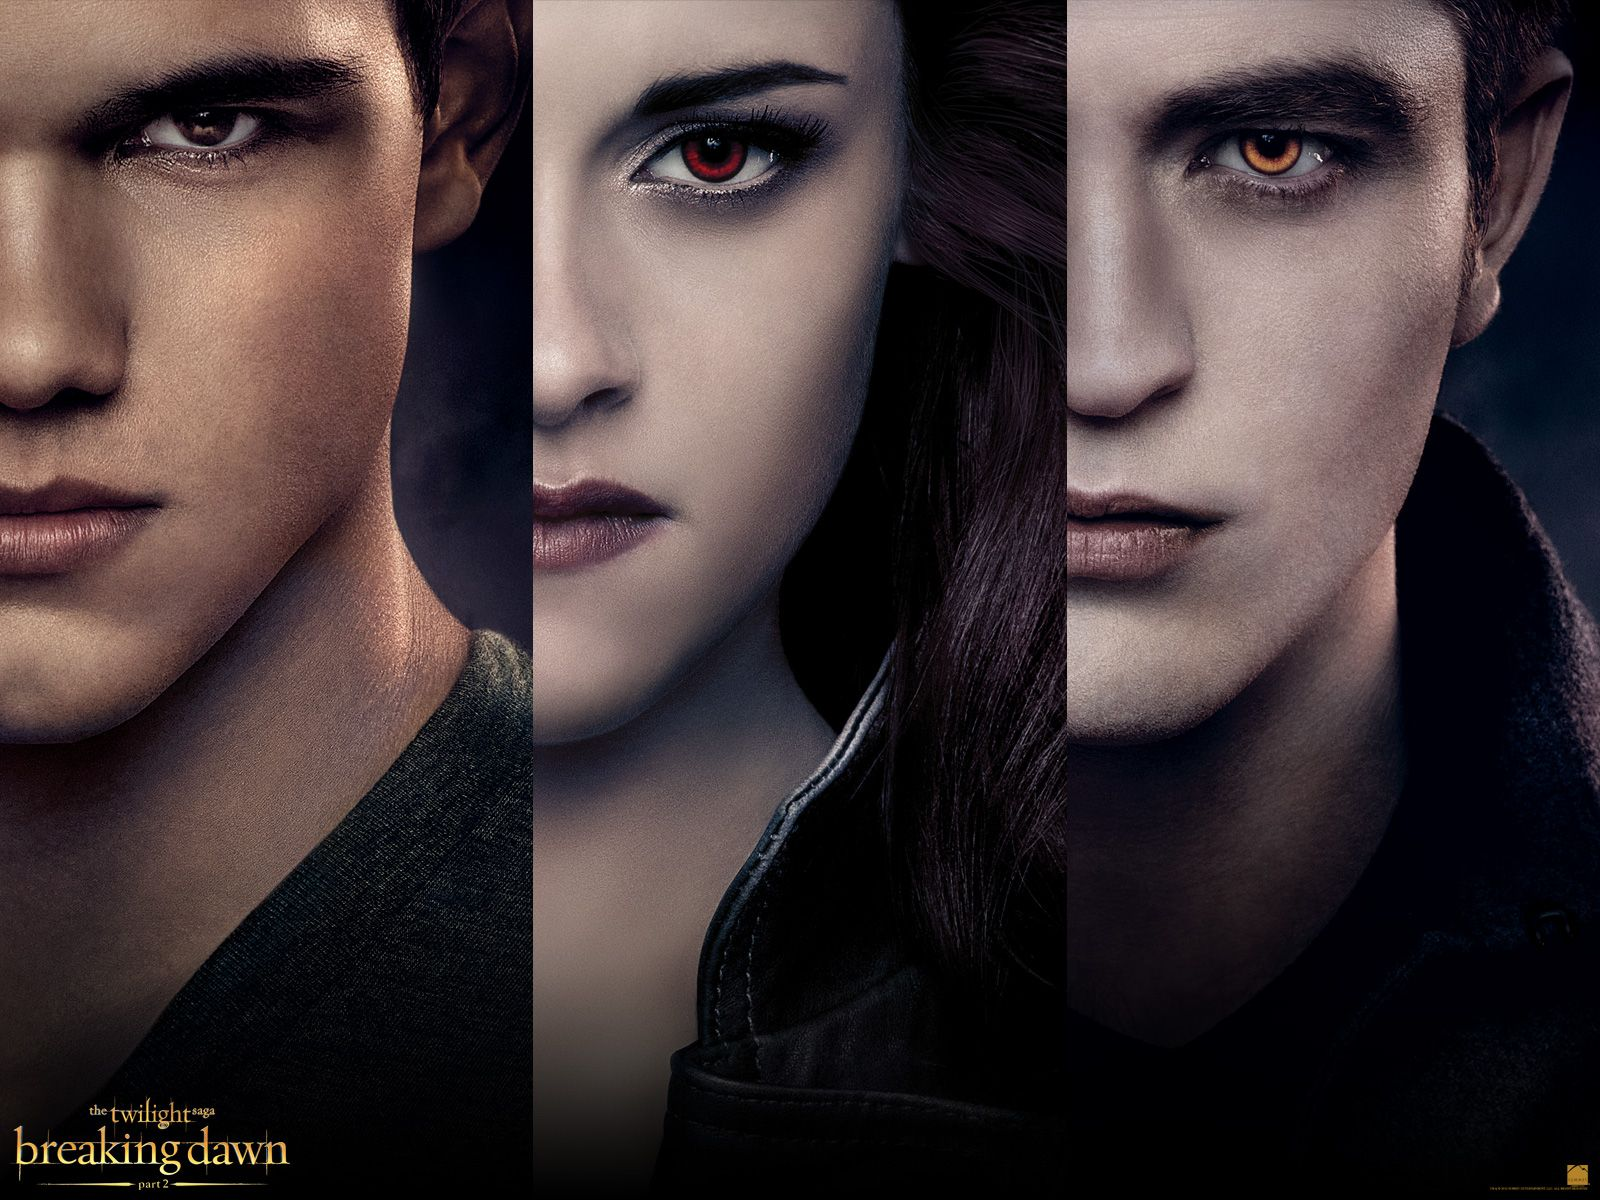 After the birth of Renesmee, the Cullens gather other